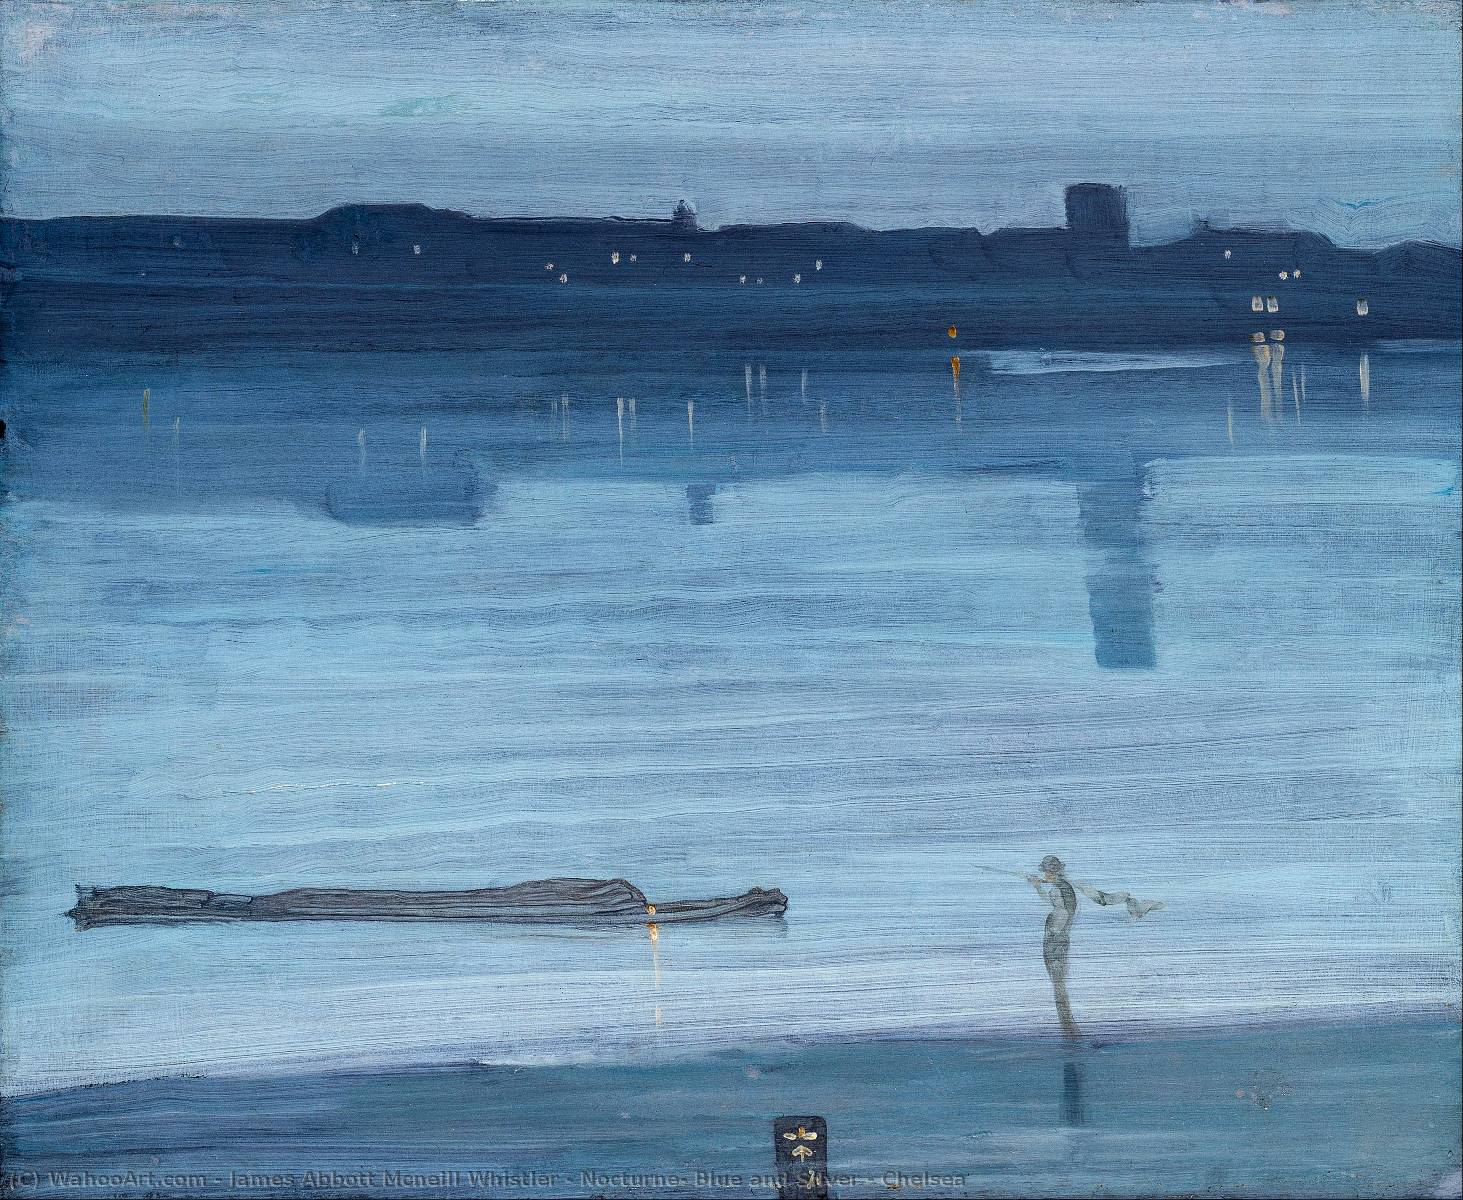 Nocturne: Blue and Silver - Chelsea, 1871 by James Abbott Mcneill Whistler (1834-1903, United States) | Famous Paintings Reproductions | WahooArt.com